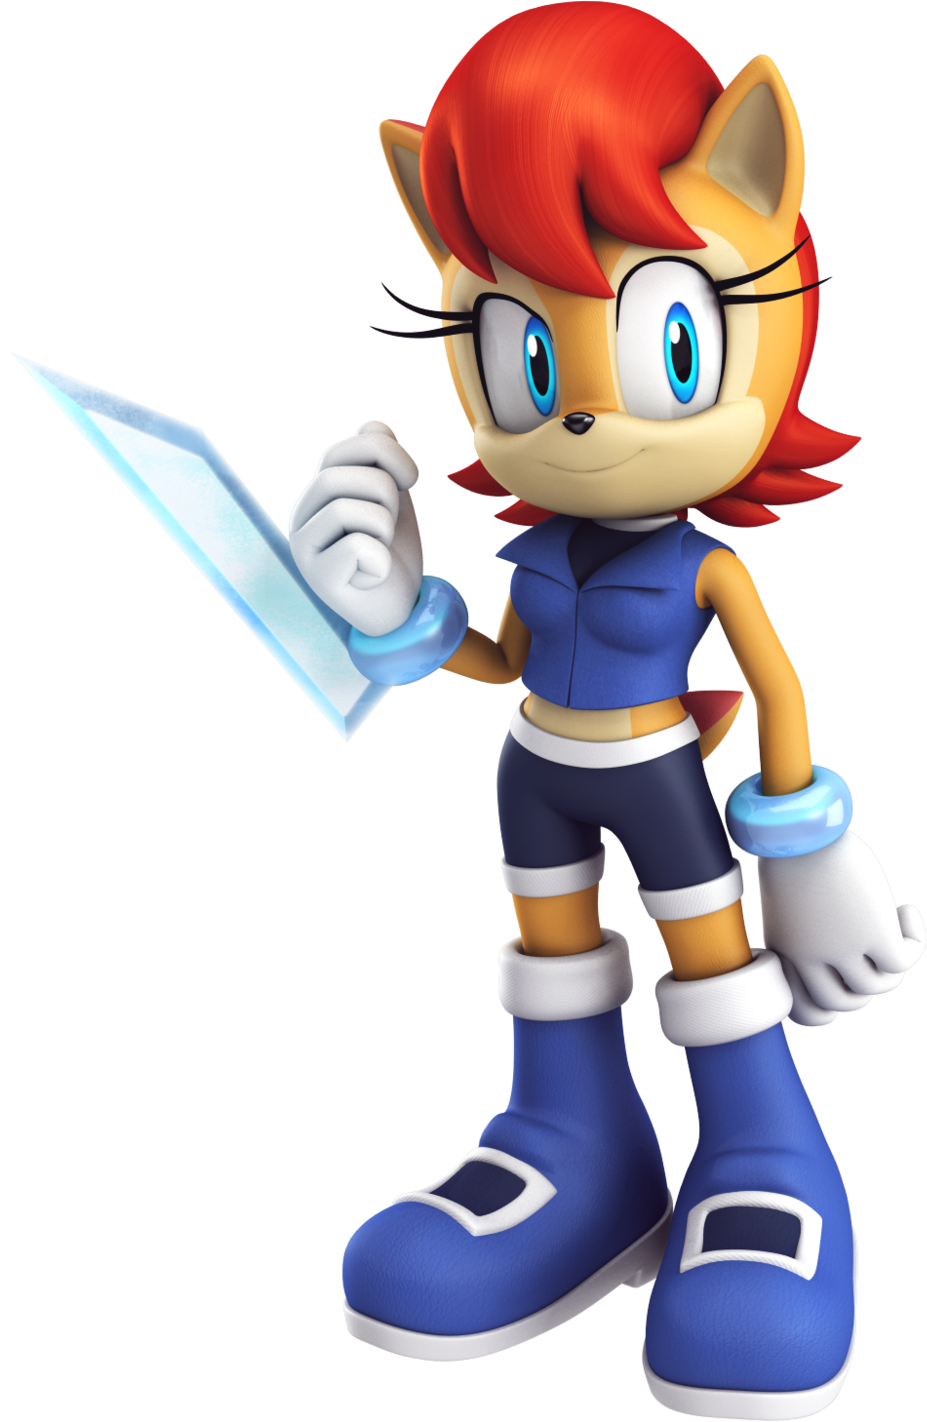 Invisible Hover/PG Proposal: Sally Acorn